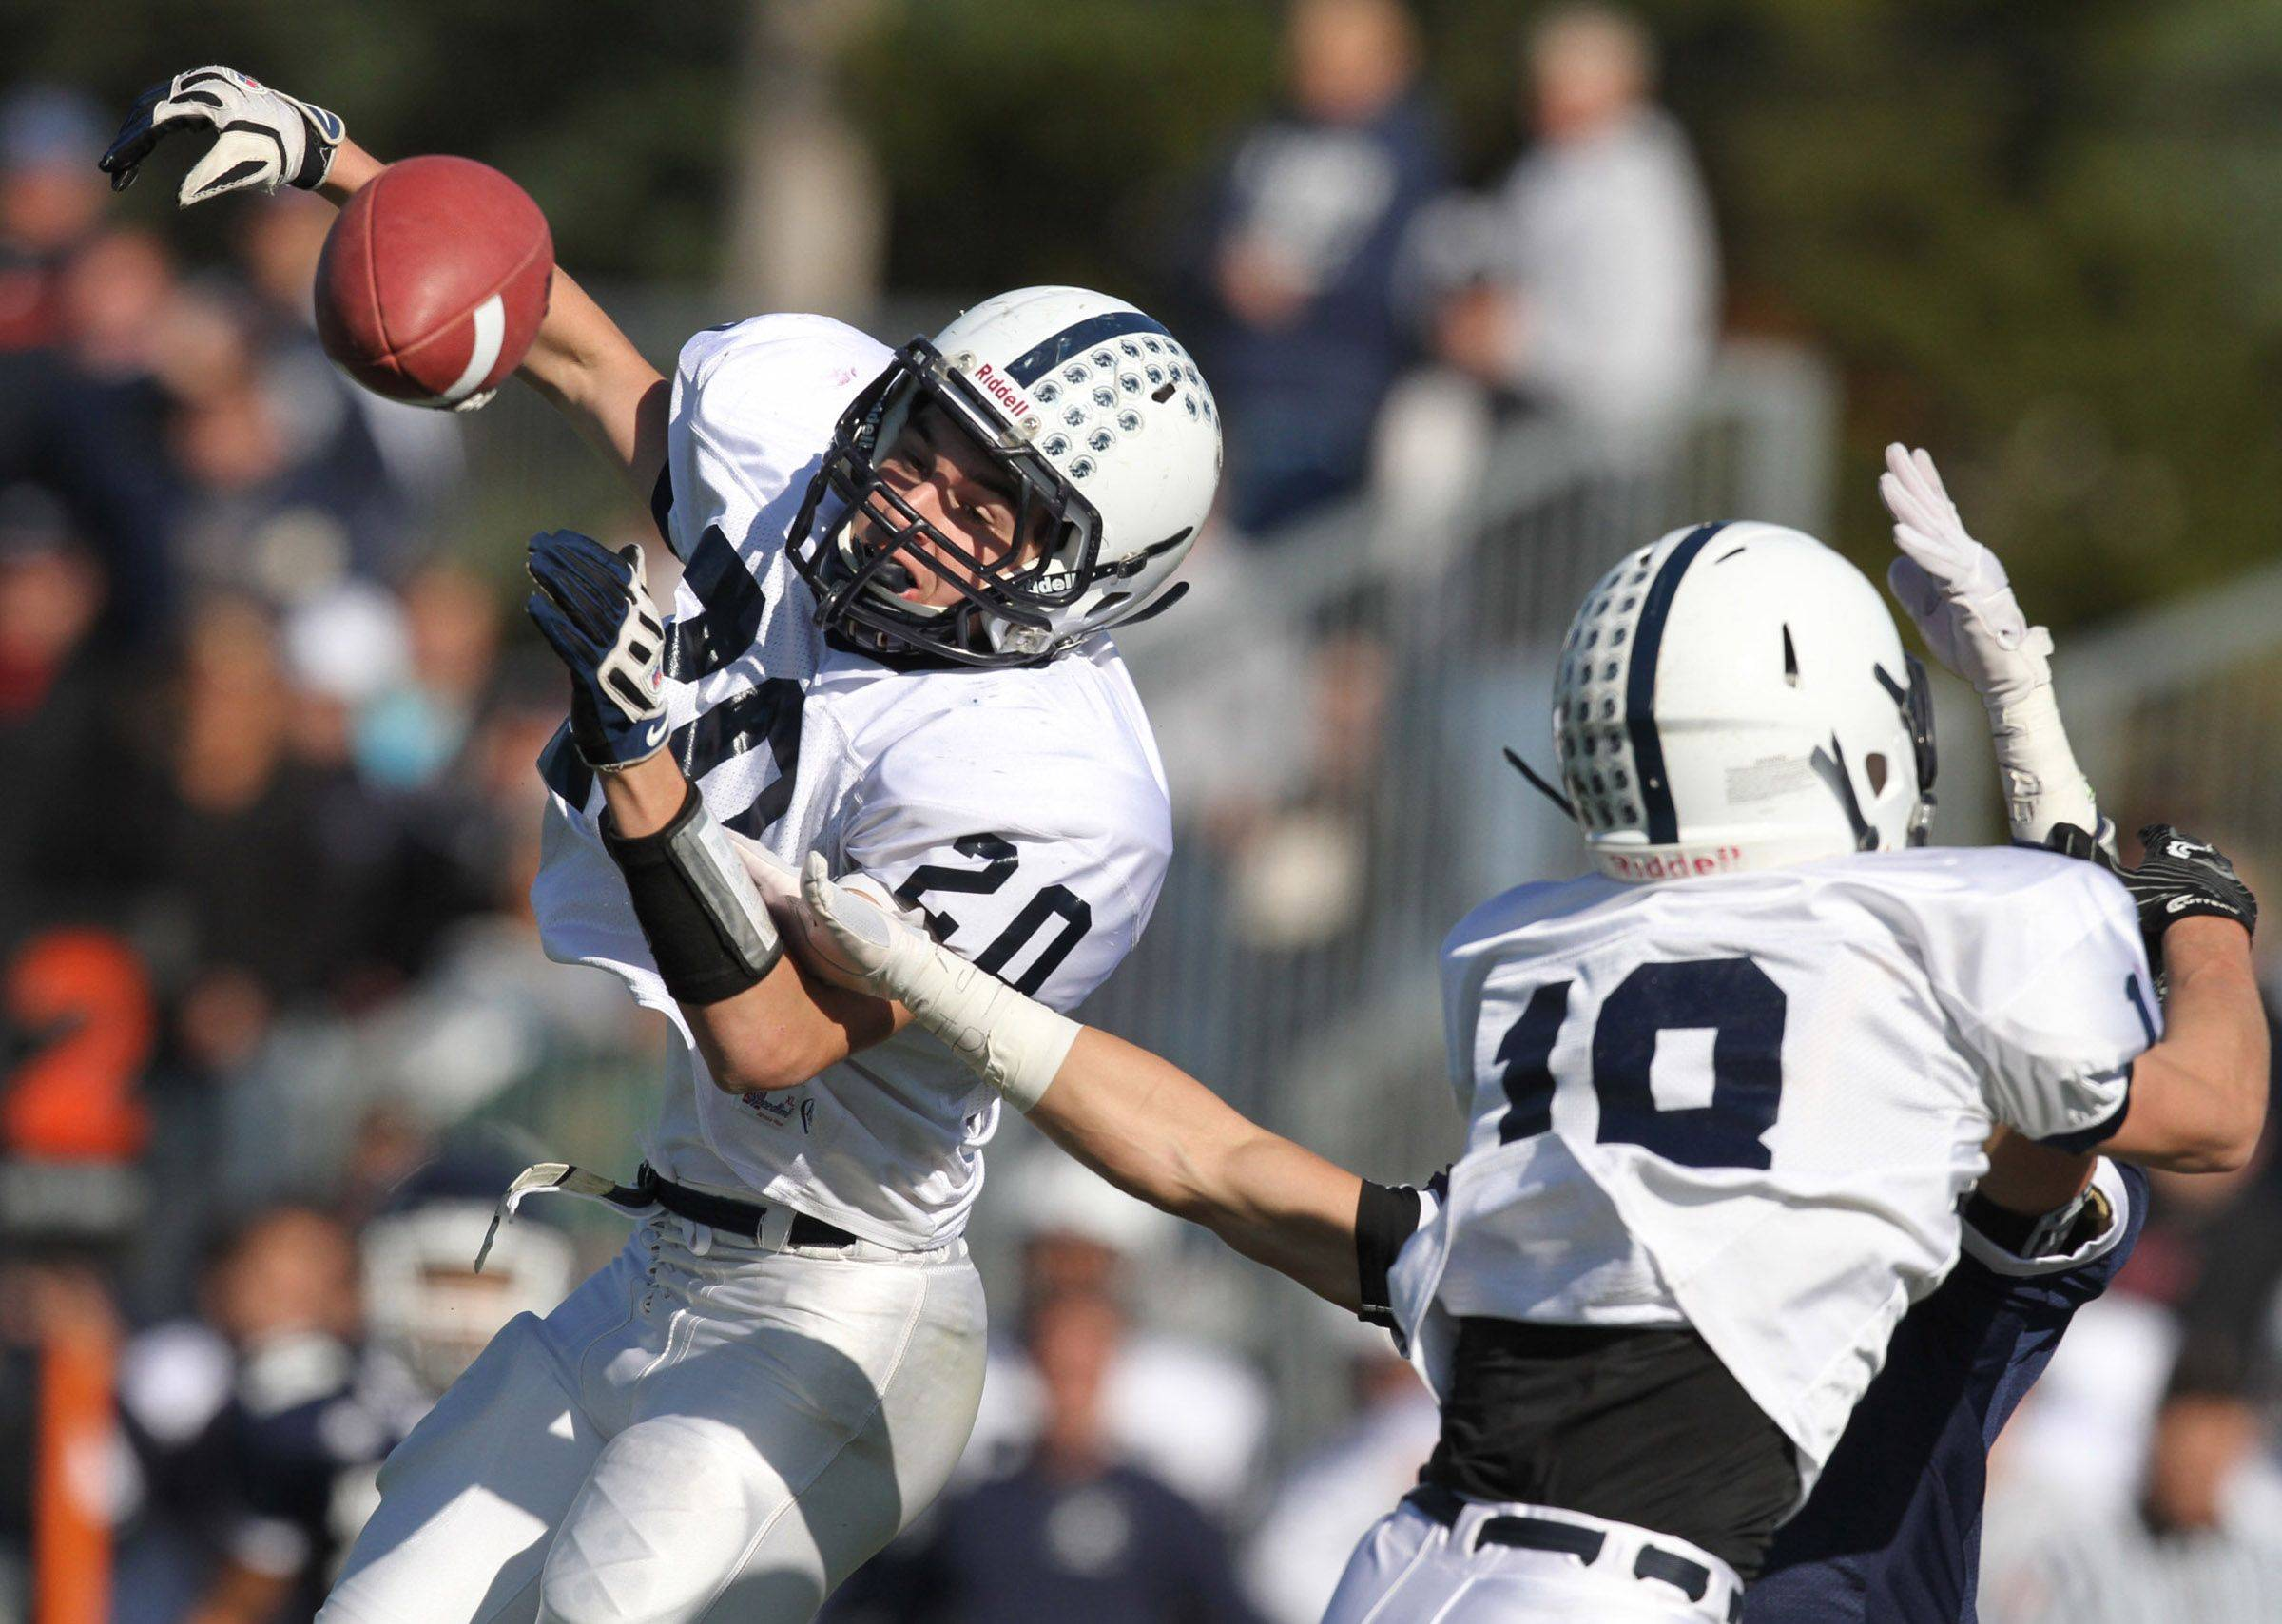 Cary-Grove defensive-back Sean Keadyjust missed intercepting this pass by Nazareth Academy quarterback on Saturday, November 5th.